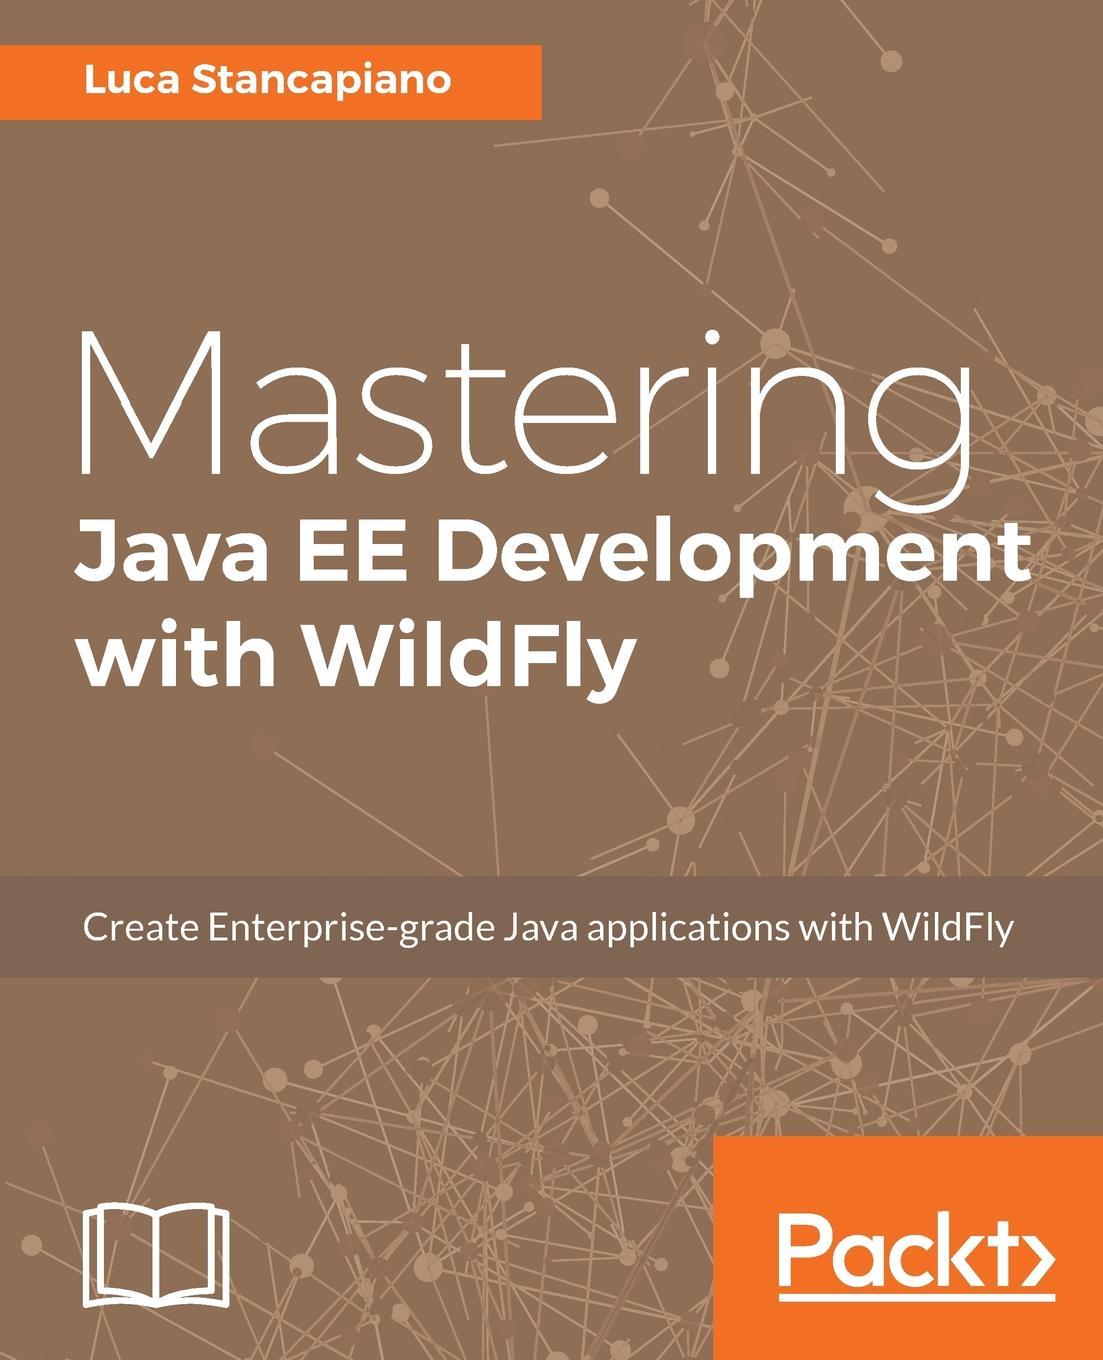 Luca Stancapiano Mastering Java EE Development with WildFly deepak vohra advanced java ee development with wildfly